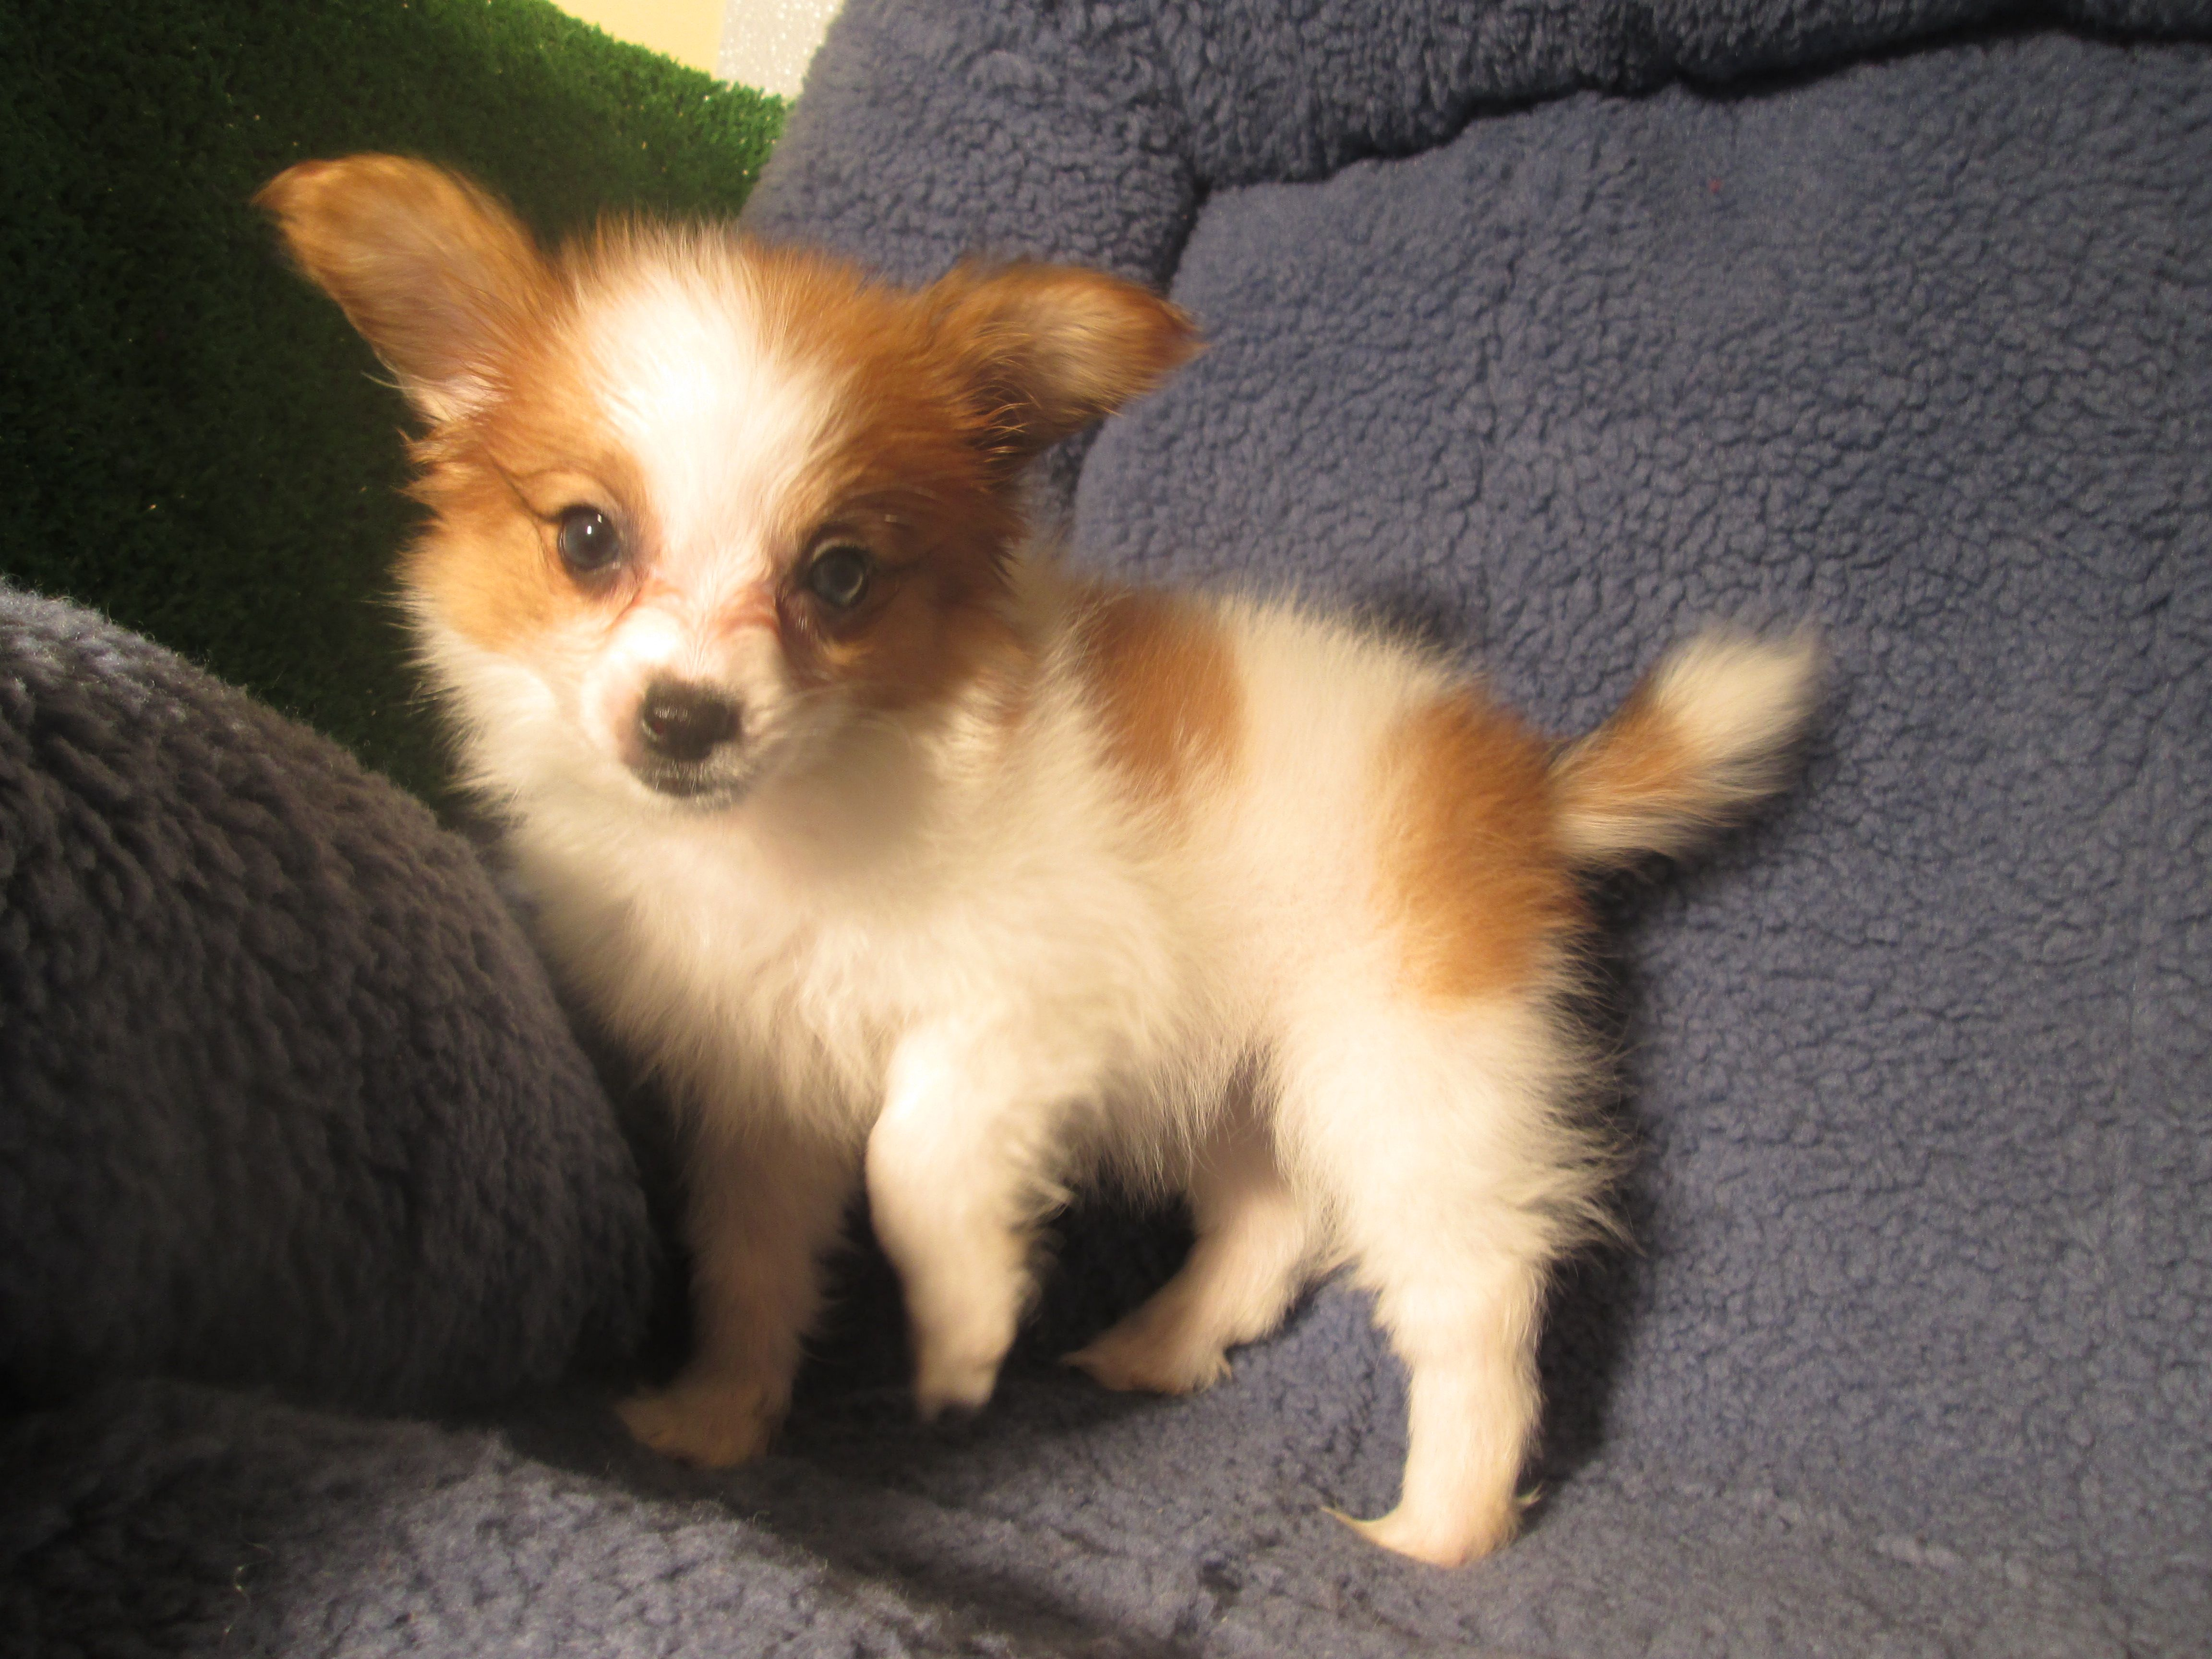 Precious Papillion Puppies Available 8 12 Weeks Of Age Permanent Shots And Wormings Completed Along With Mi Papillion Puppies Puppies Puppies For Sale